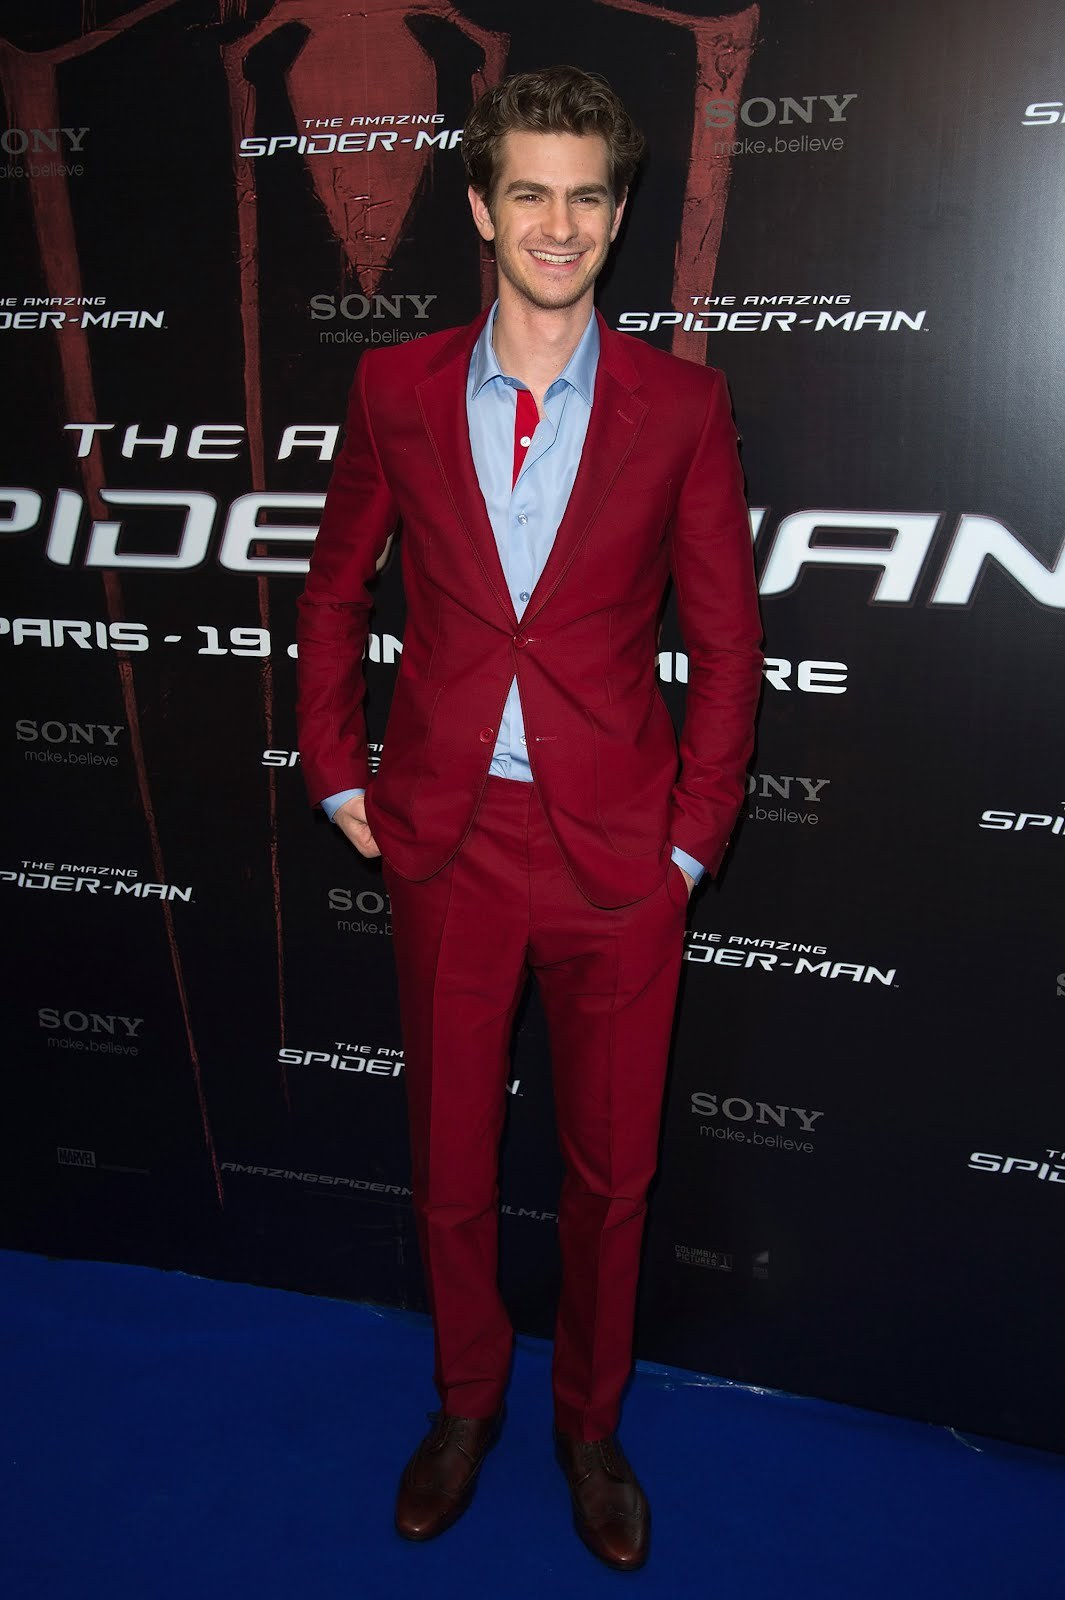 ANDREW GARFIELD WEARS A VERY COOL RED SUIT